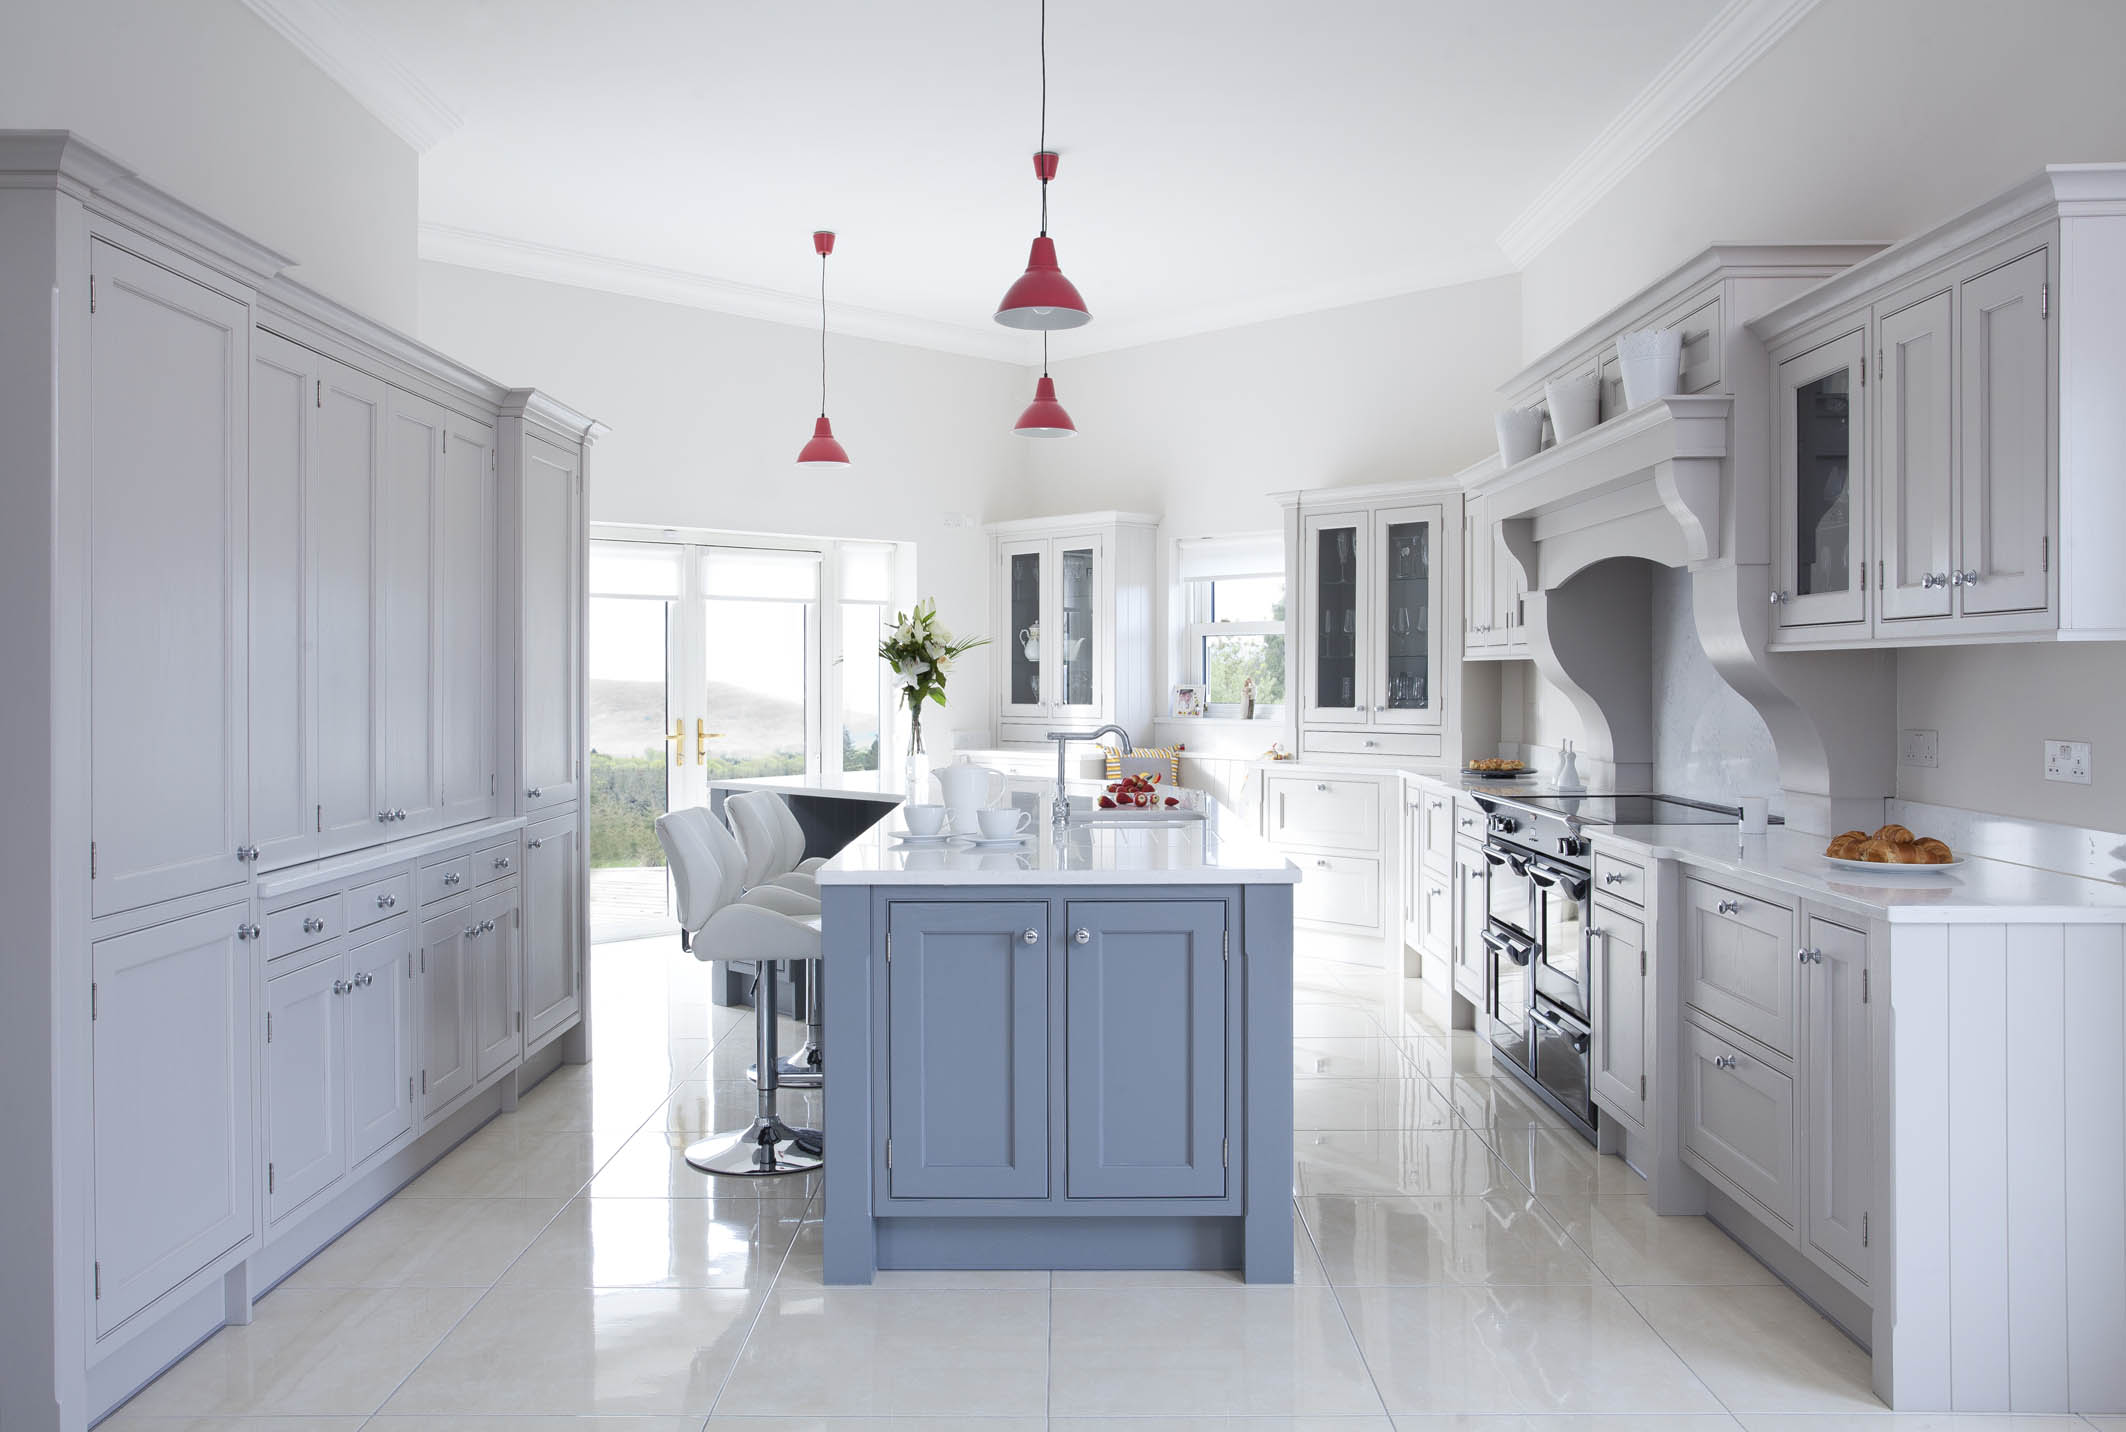 Classic Kitchens Handpainted Kitchens Dublin Limerick Galway